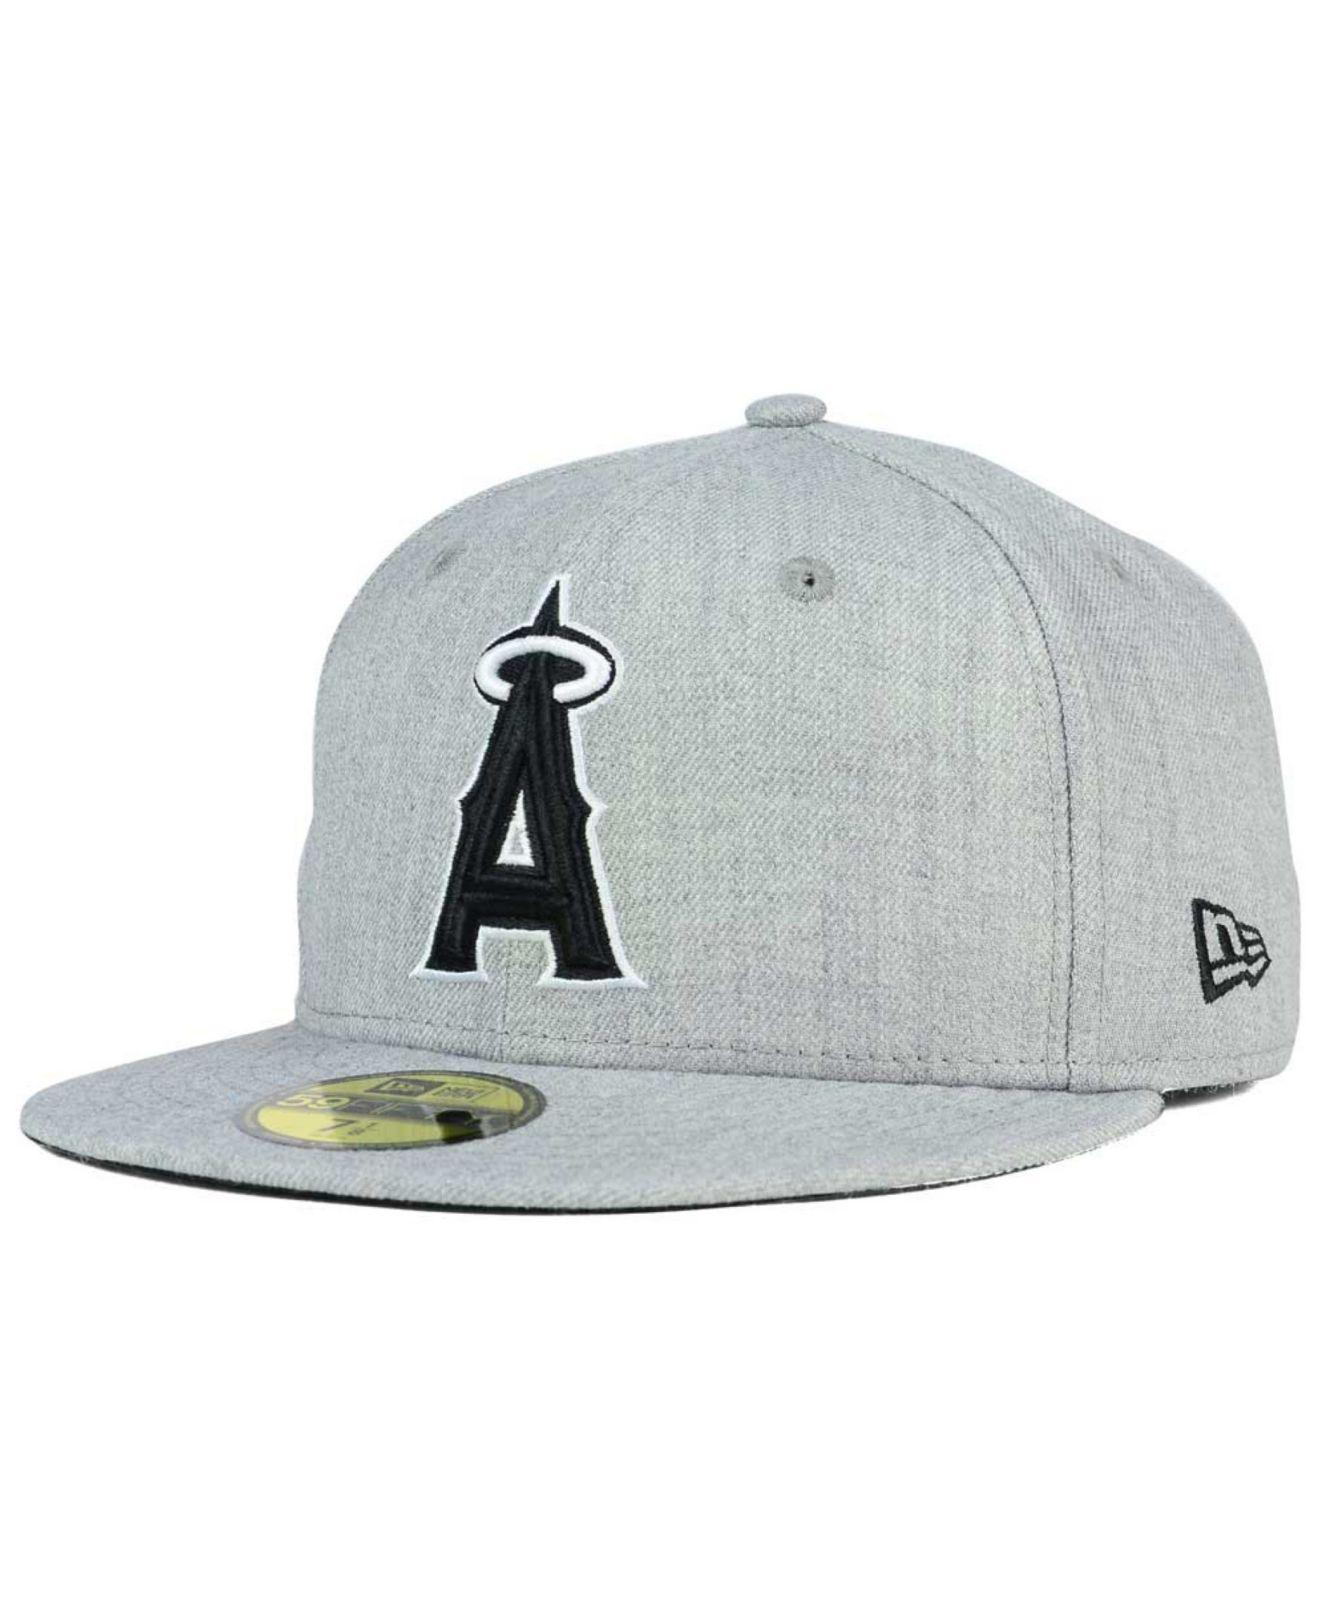 new arrivals 76a7c 9e90a KTZ. Men s Gray Los Angeles Angels Of Anaheim Heather Black White 59fifty  Cap